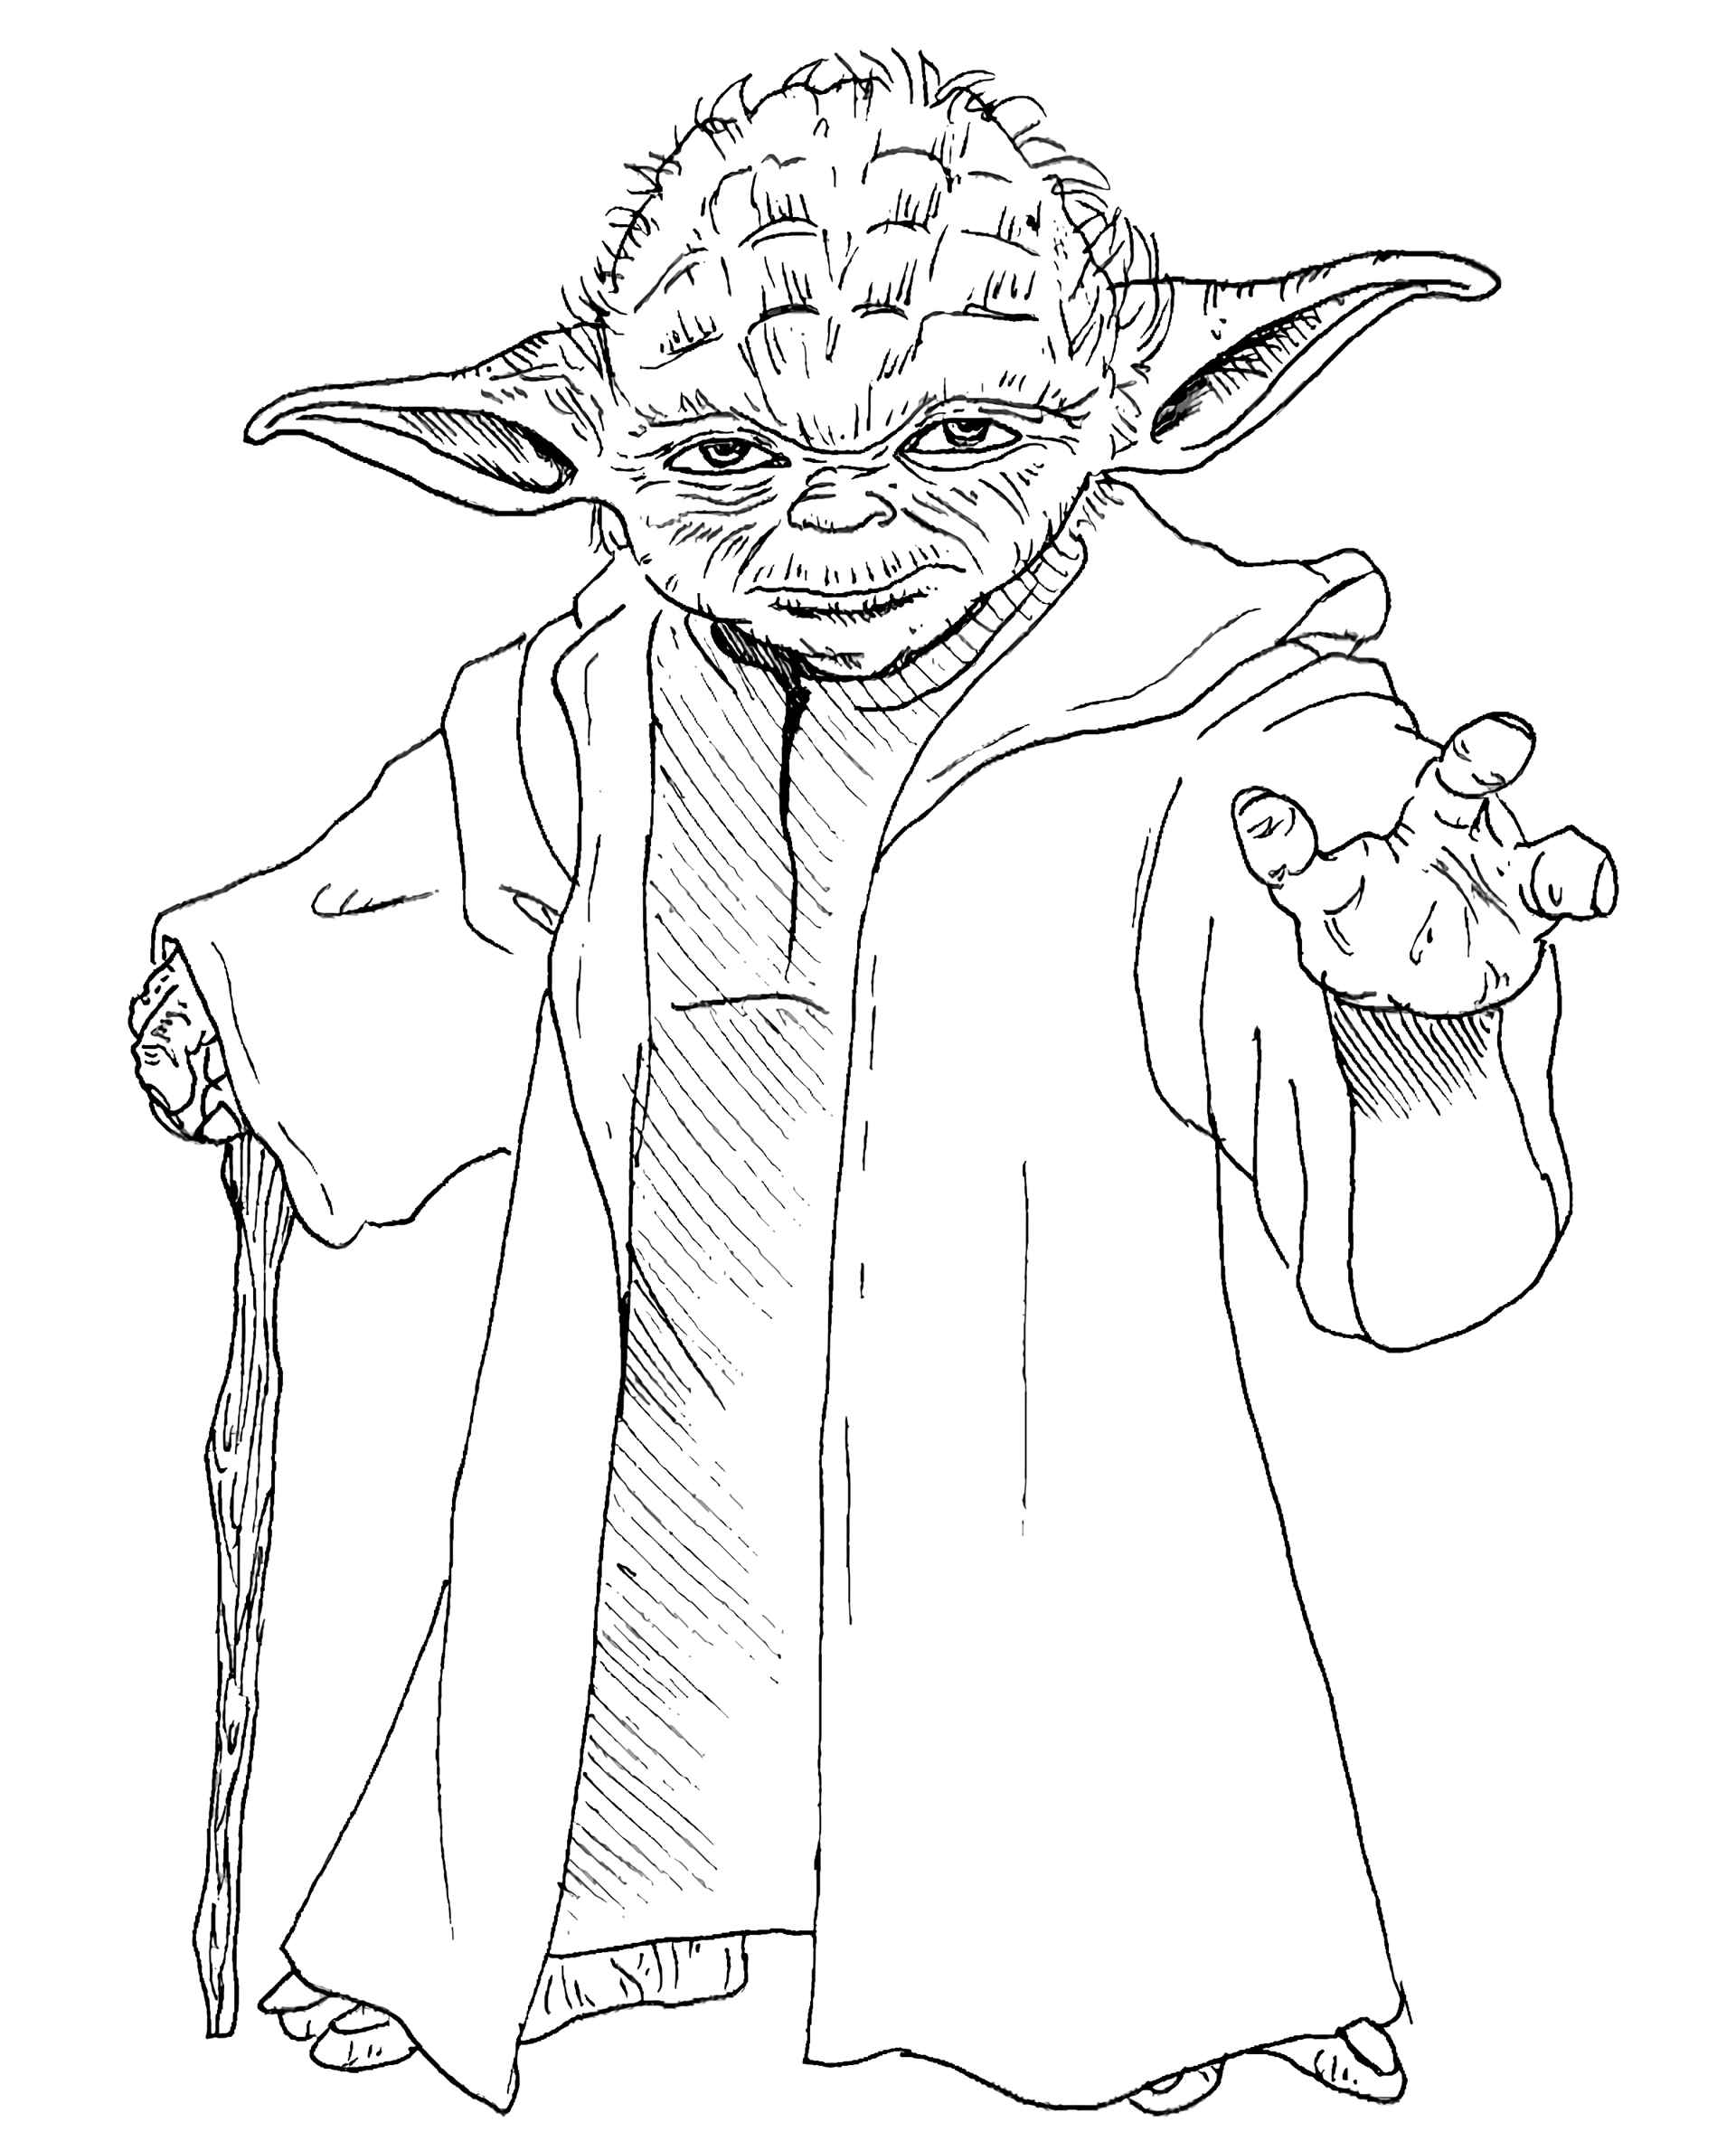 Full-Length Master Yoda From Star Wars Coloring Page